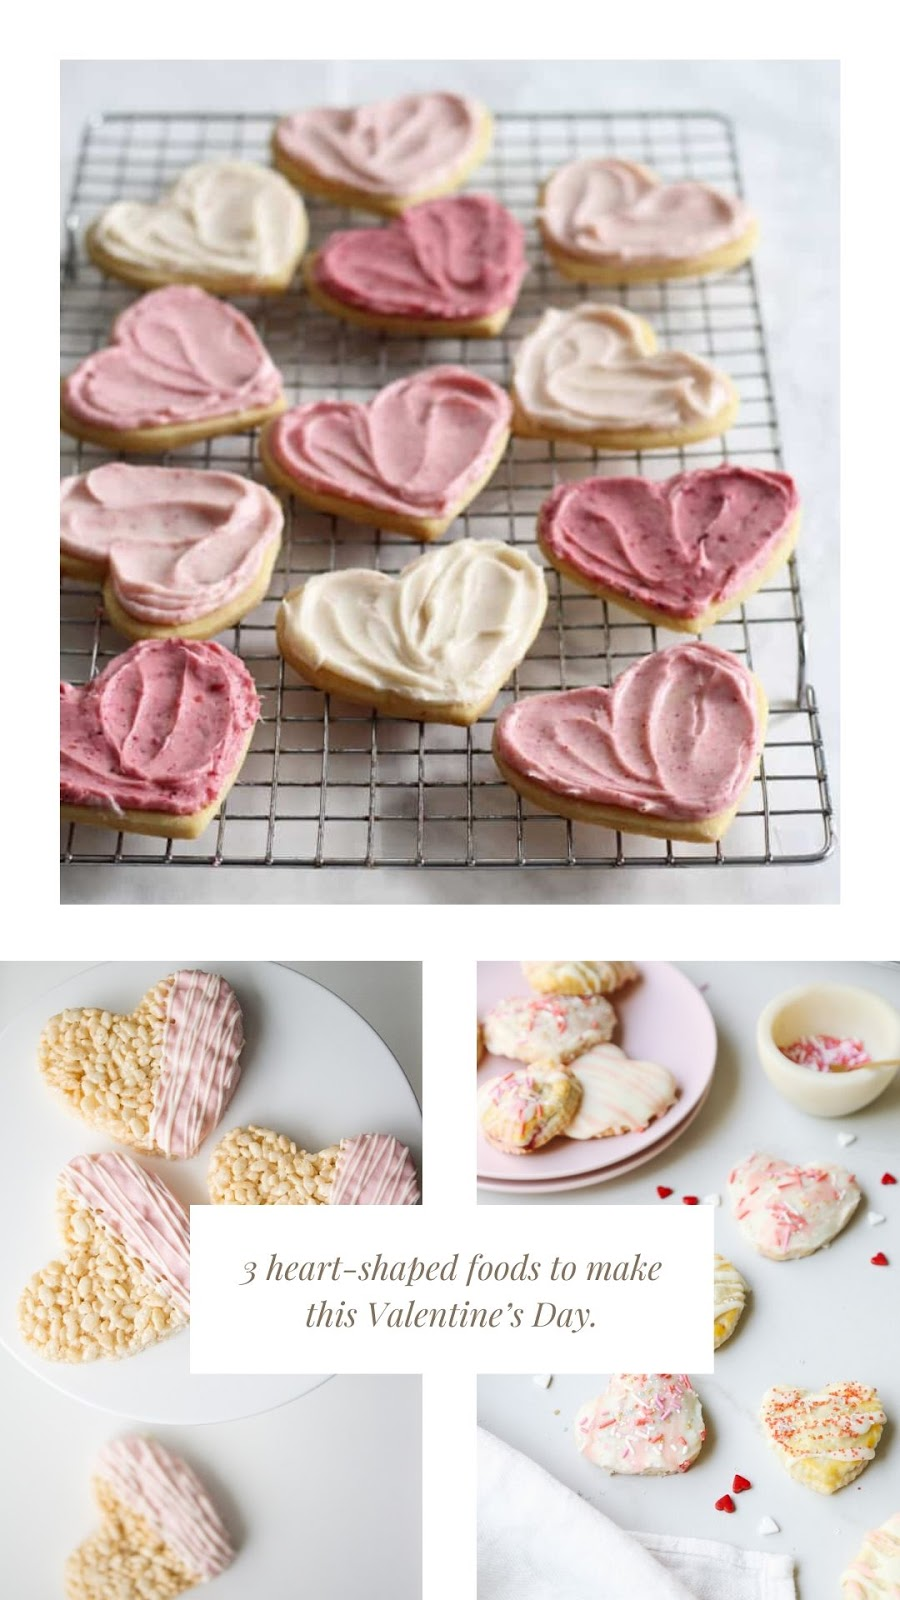 3 heart-shaped foods to make this Valentine's Day